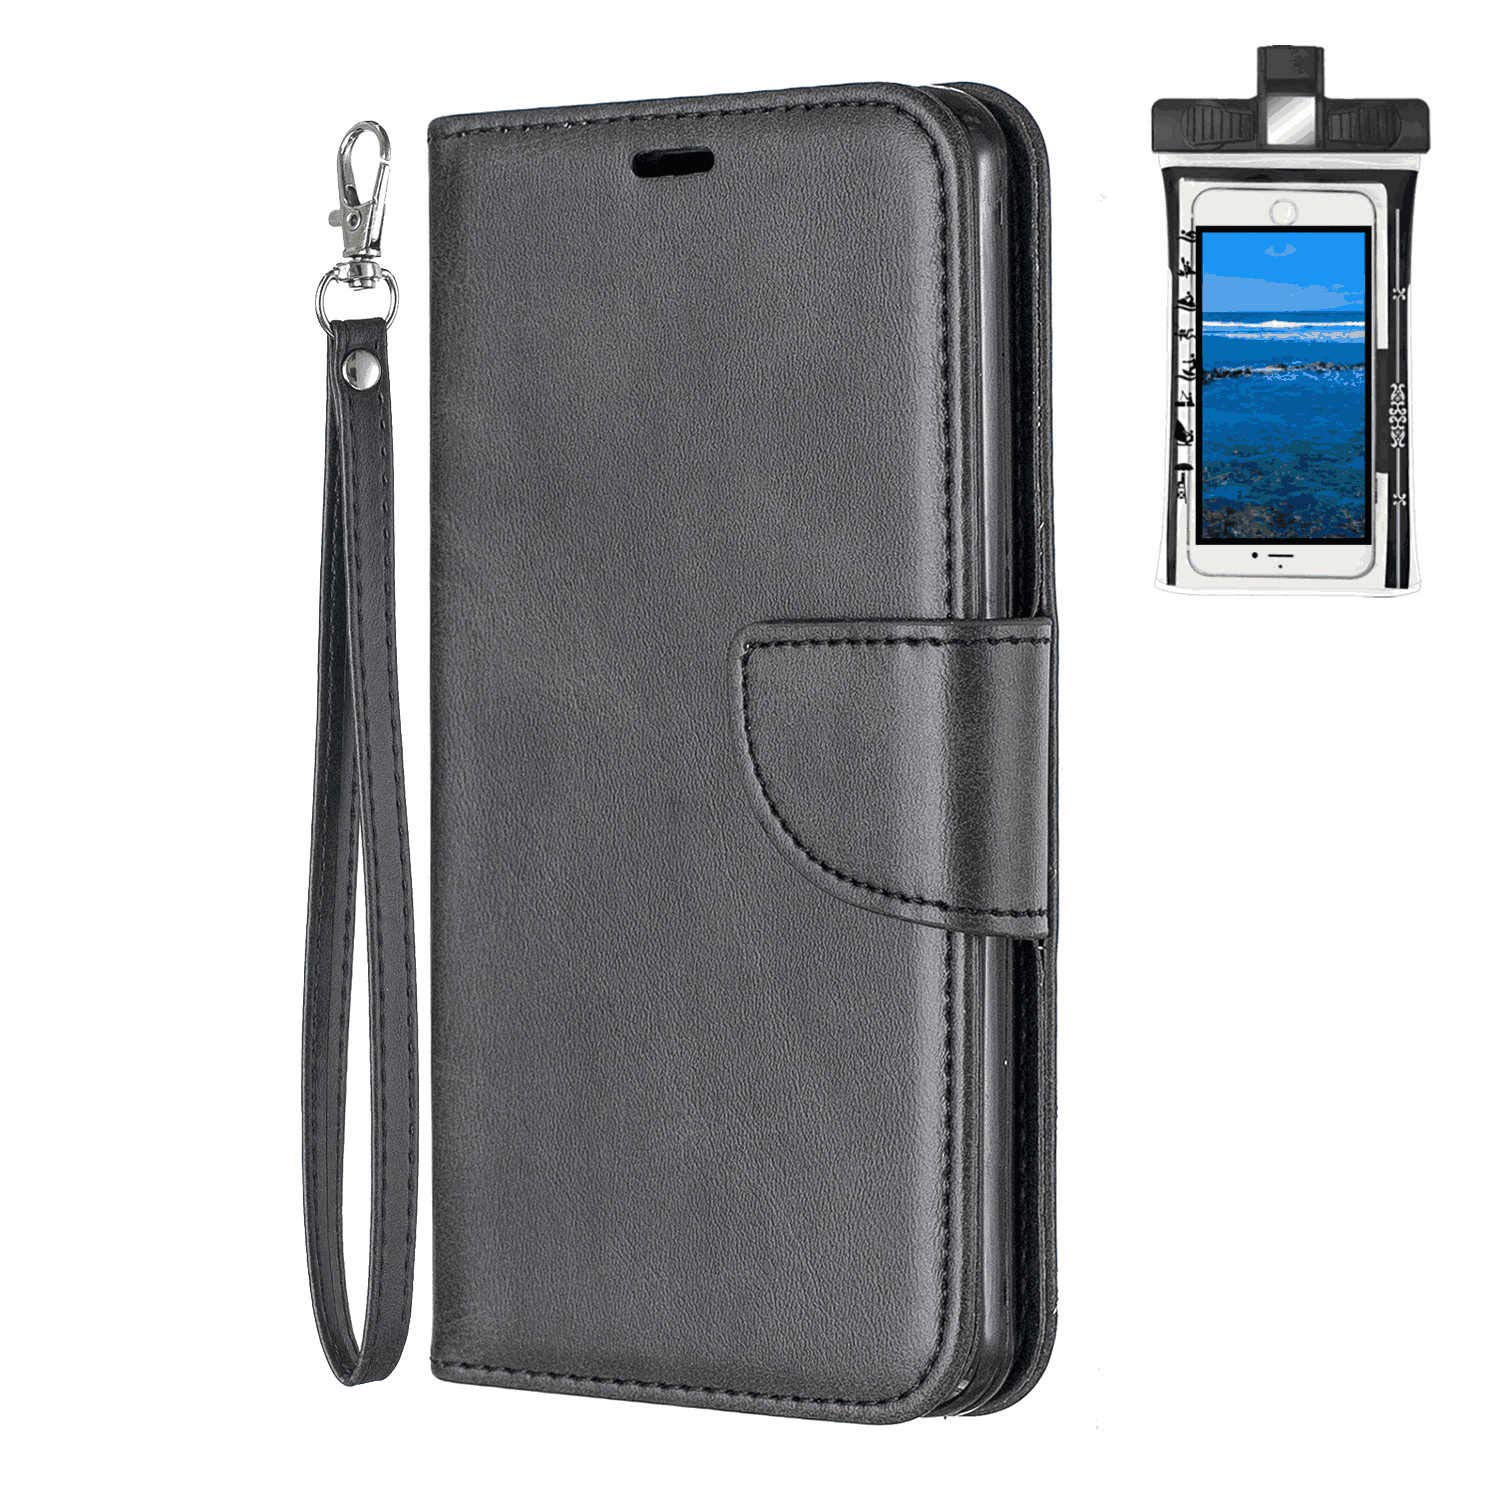 Cover for iPhone Xs Max Leather Kickstand Mobile Phone Cover Luxury Business Card Holders with Free Waterproof-Bag iPhone Xs Max Flip Case